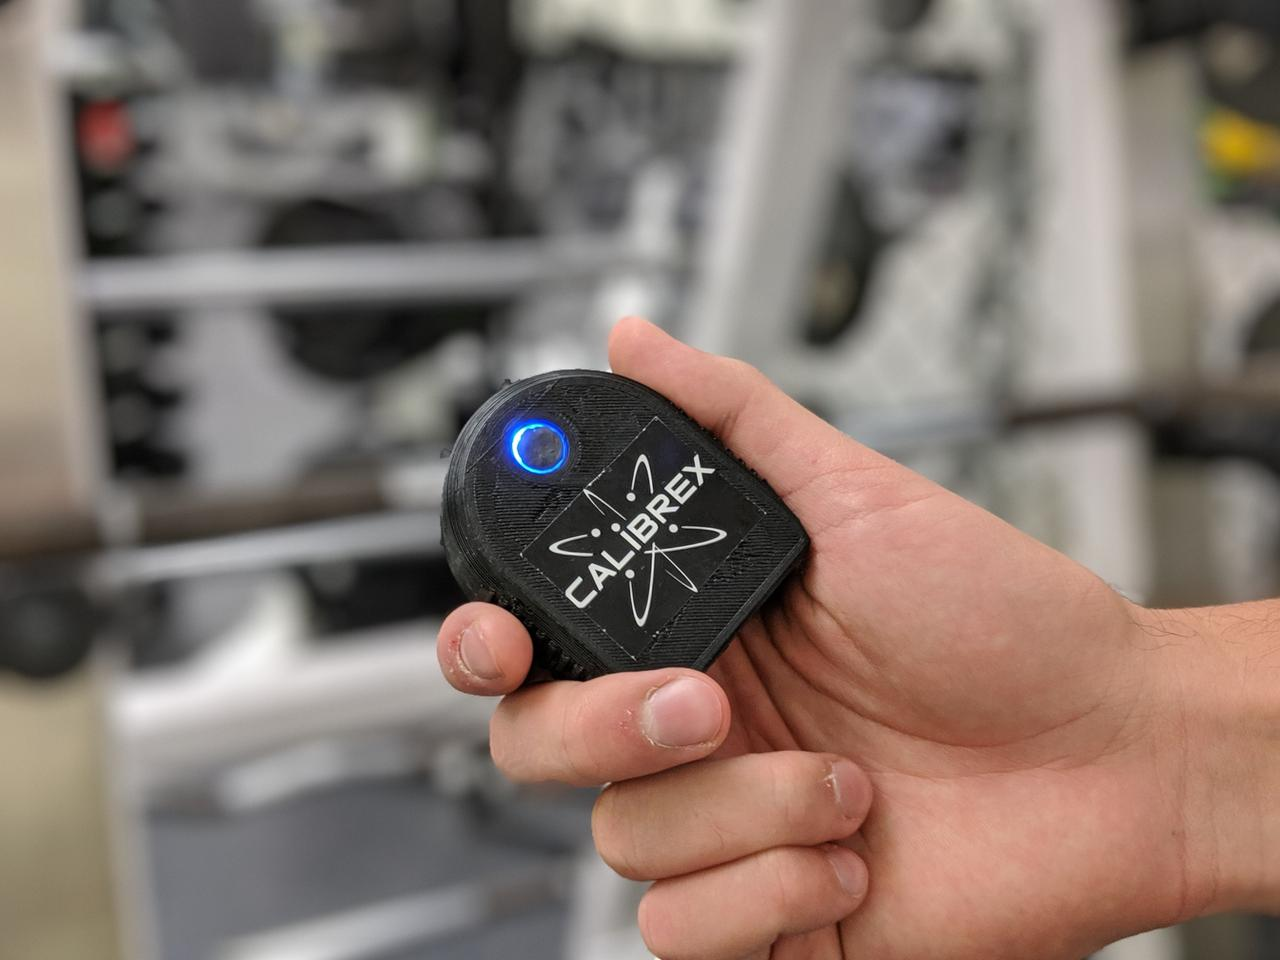 The Calibrex sensor units swivel relative to the barbell, so they remain facing down at all times